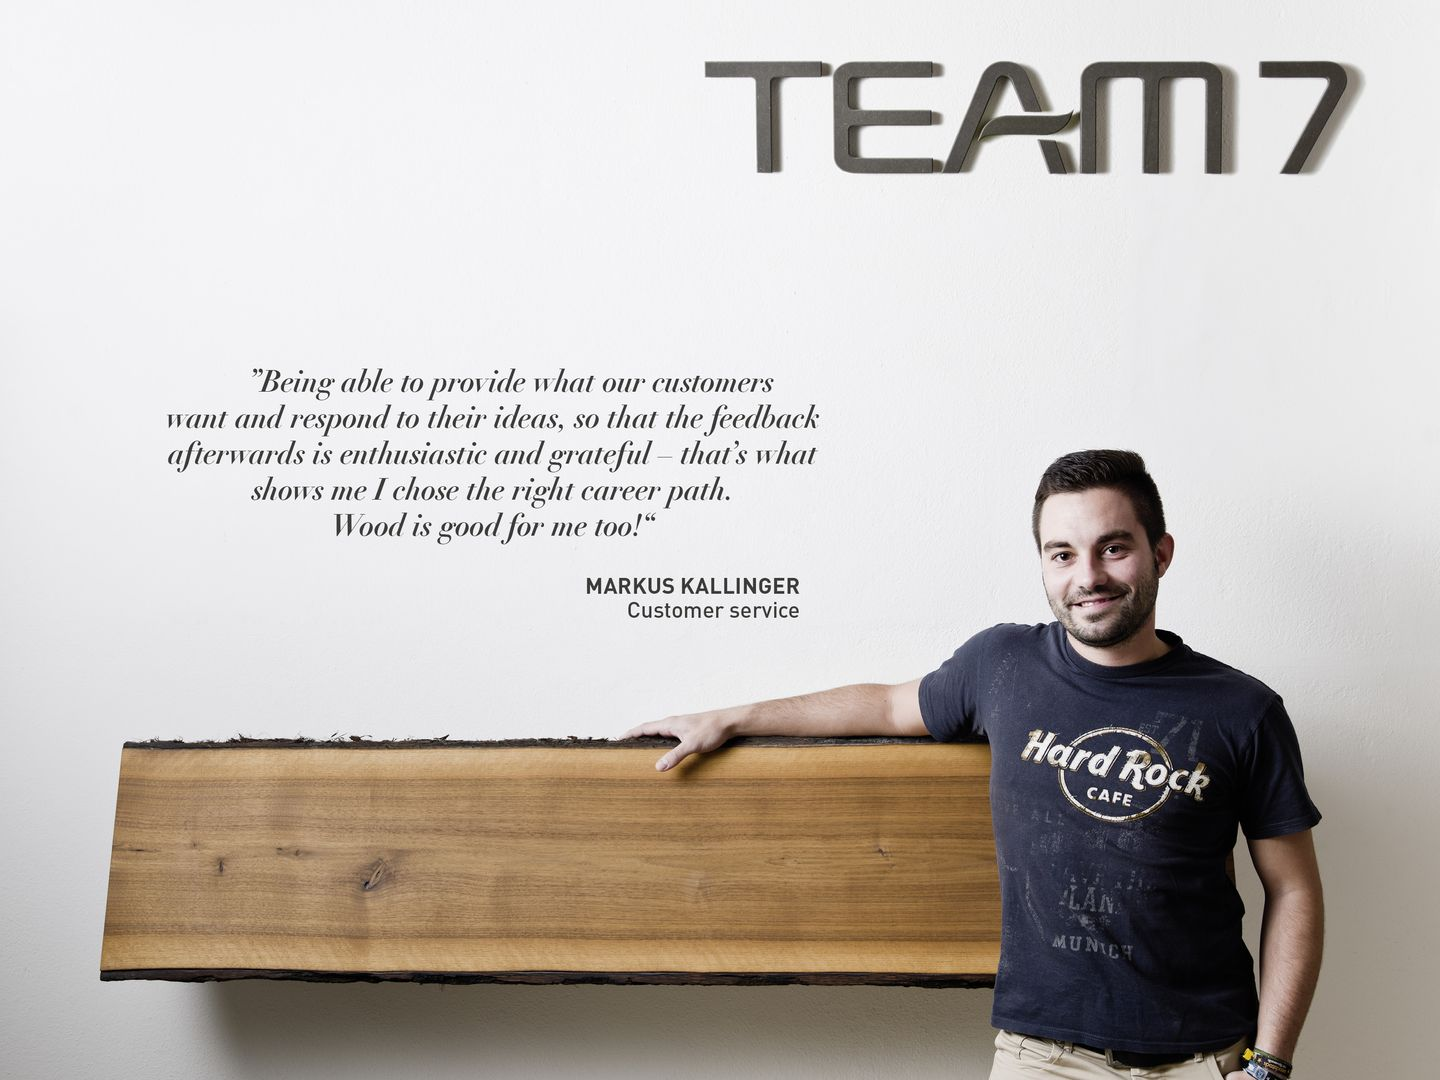 Statement by Markus Kallinger about working at TEAM 7